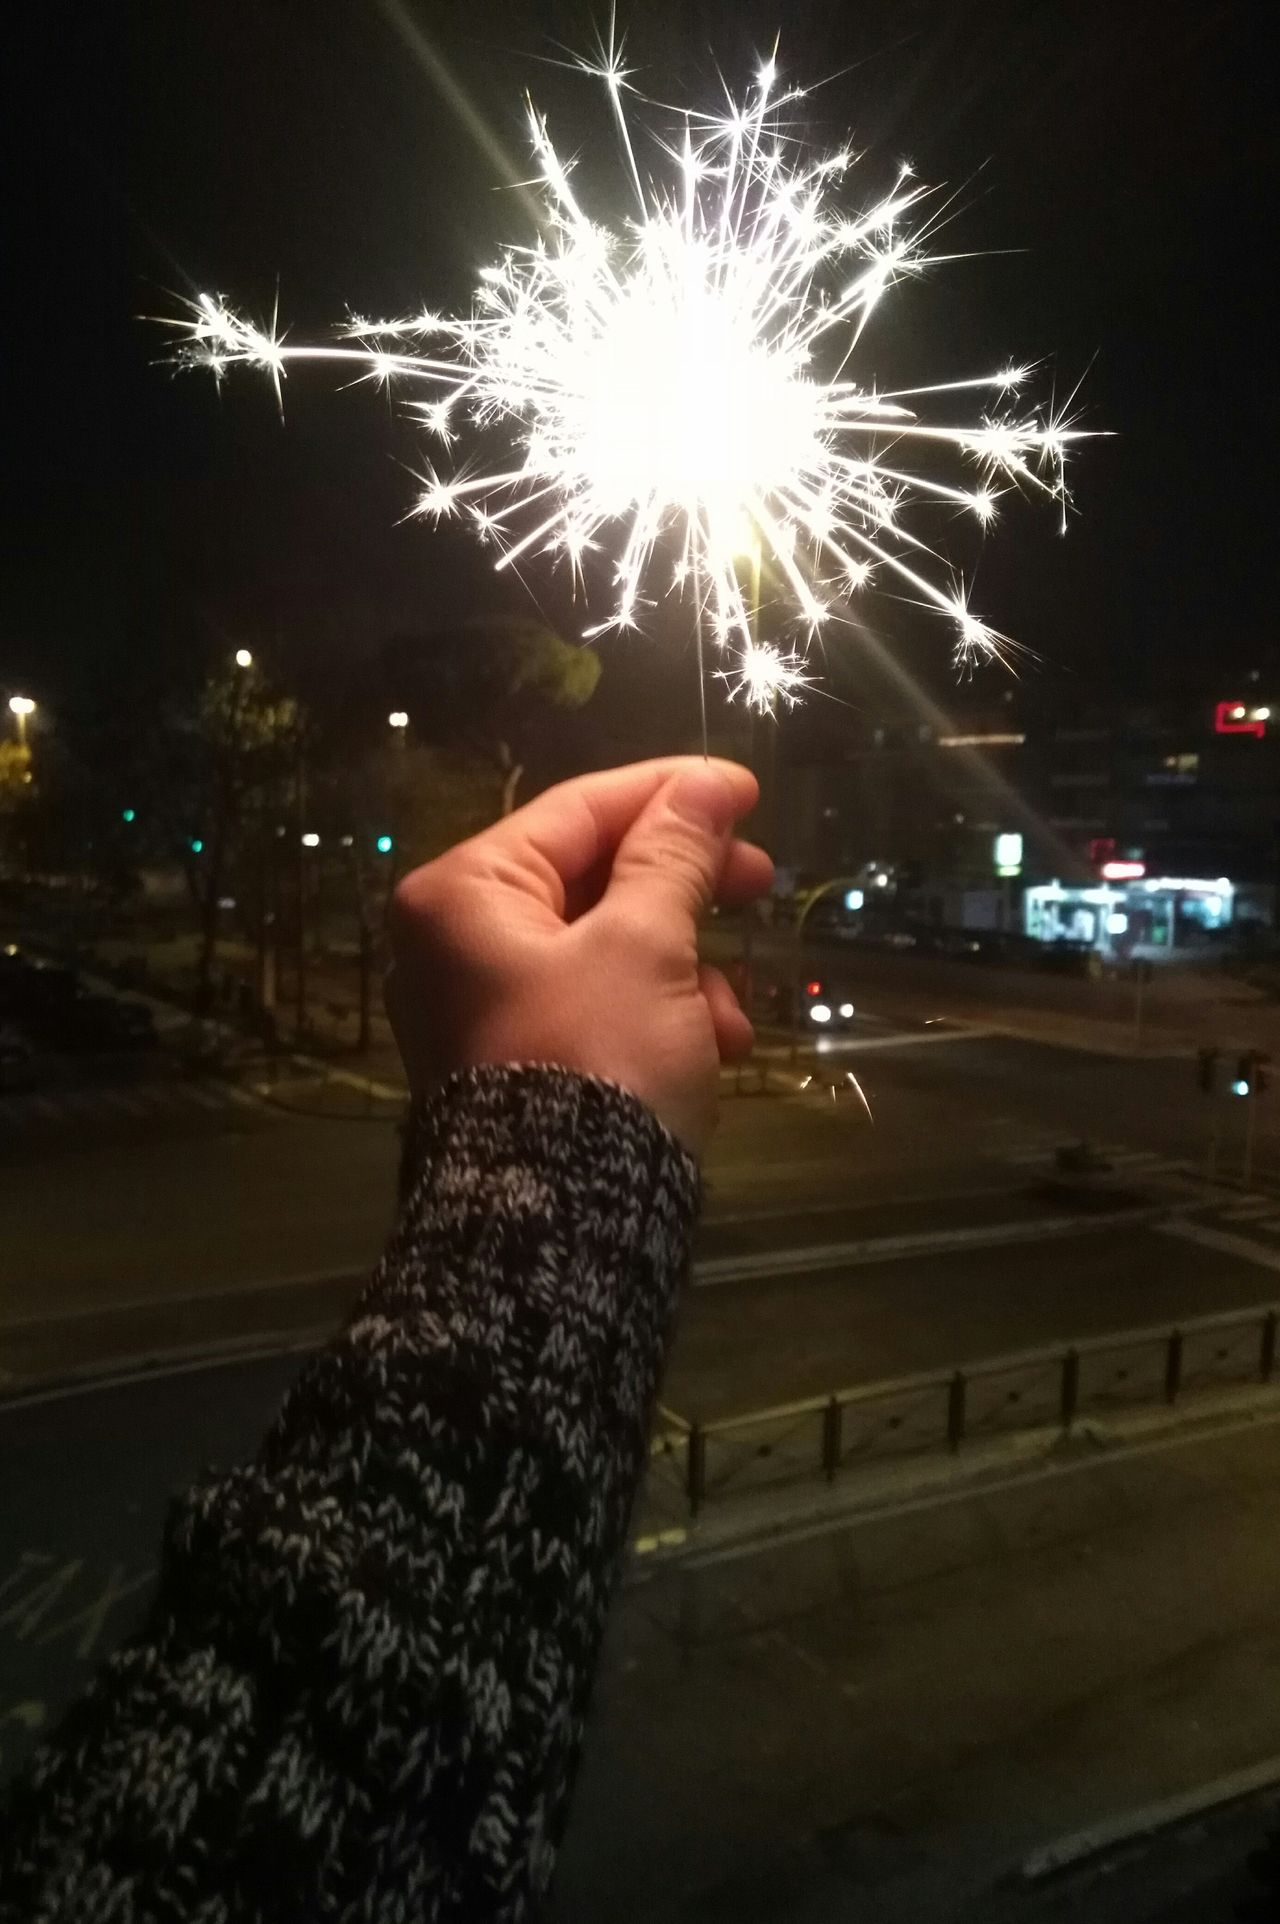 Illuminated Firework - Man Made Object Firework Display Human Hand Night Celebration Sparks Arts Culture And Entertainment Outdoors One Person Human Body Part Sky Motion Exploding Adults Only People Adult Nature Beauty In Nature Clear Sky Relaxing Wave Splashing Scenics Storm Cloud